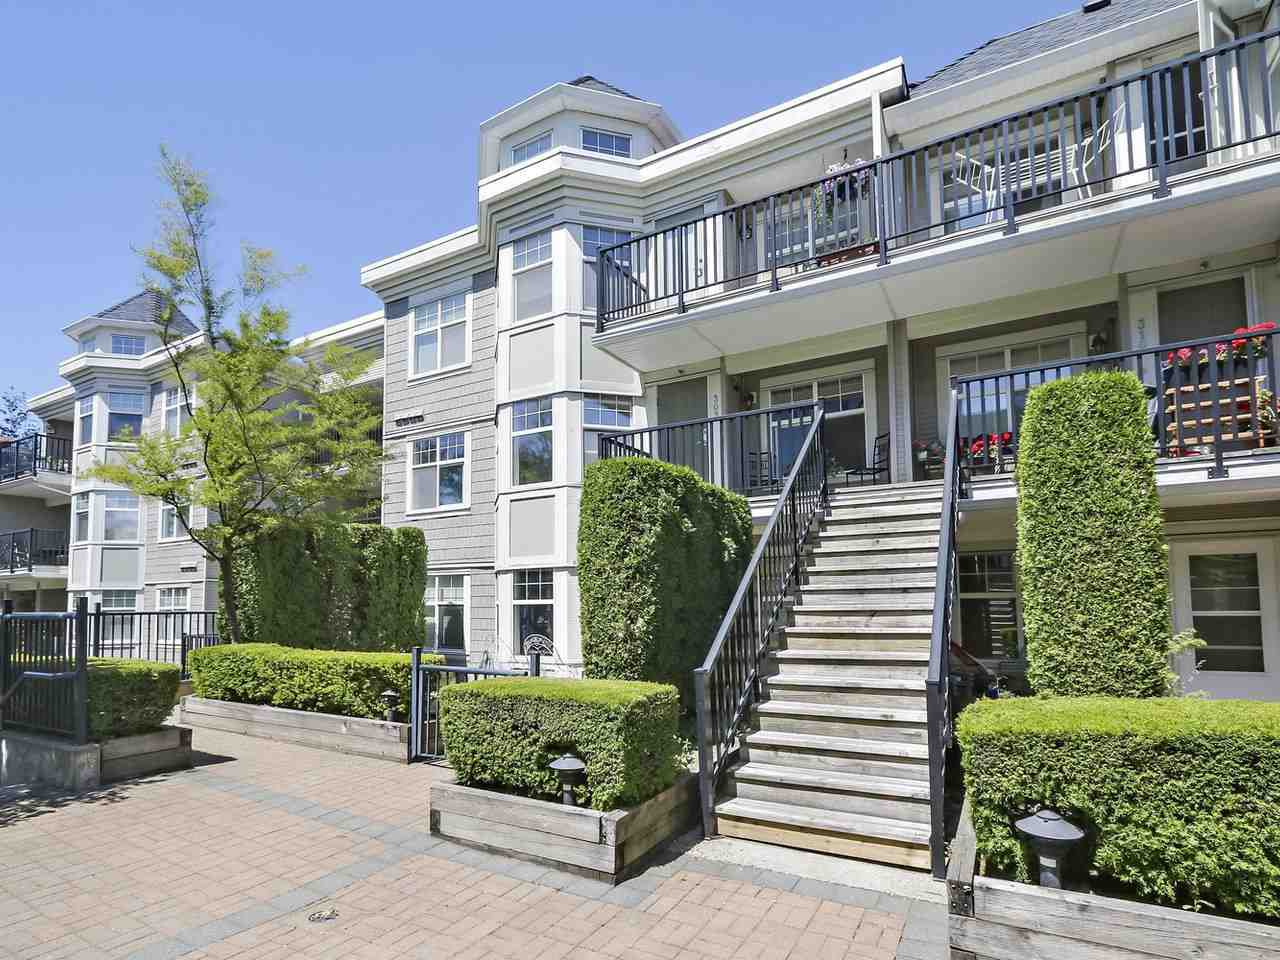 """Main Photo: 309 7038 21ST Avenue in Burnaby: Highgate Condo for sale in """"ASHBURY"""" (Burnaby South)  : MLS®# R2380437"""